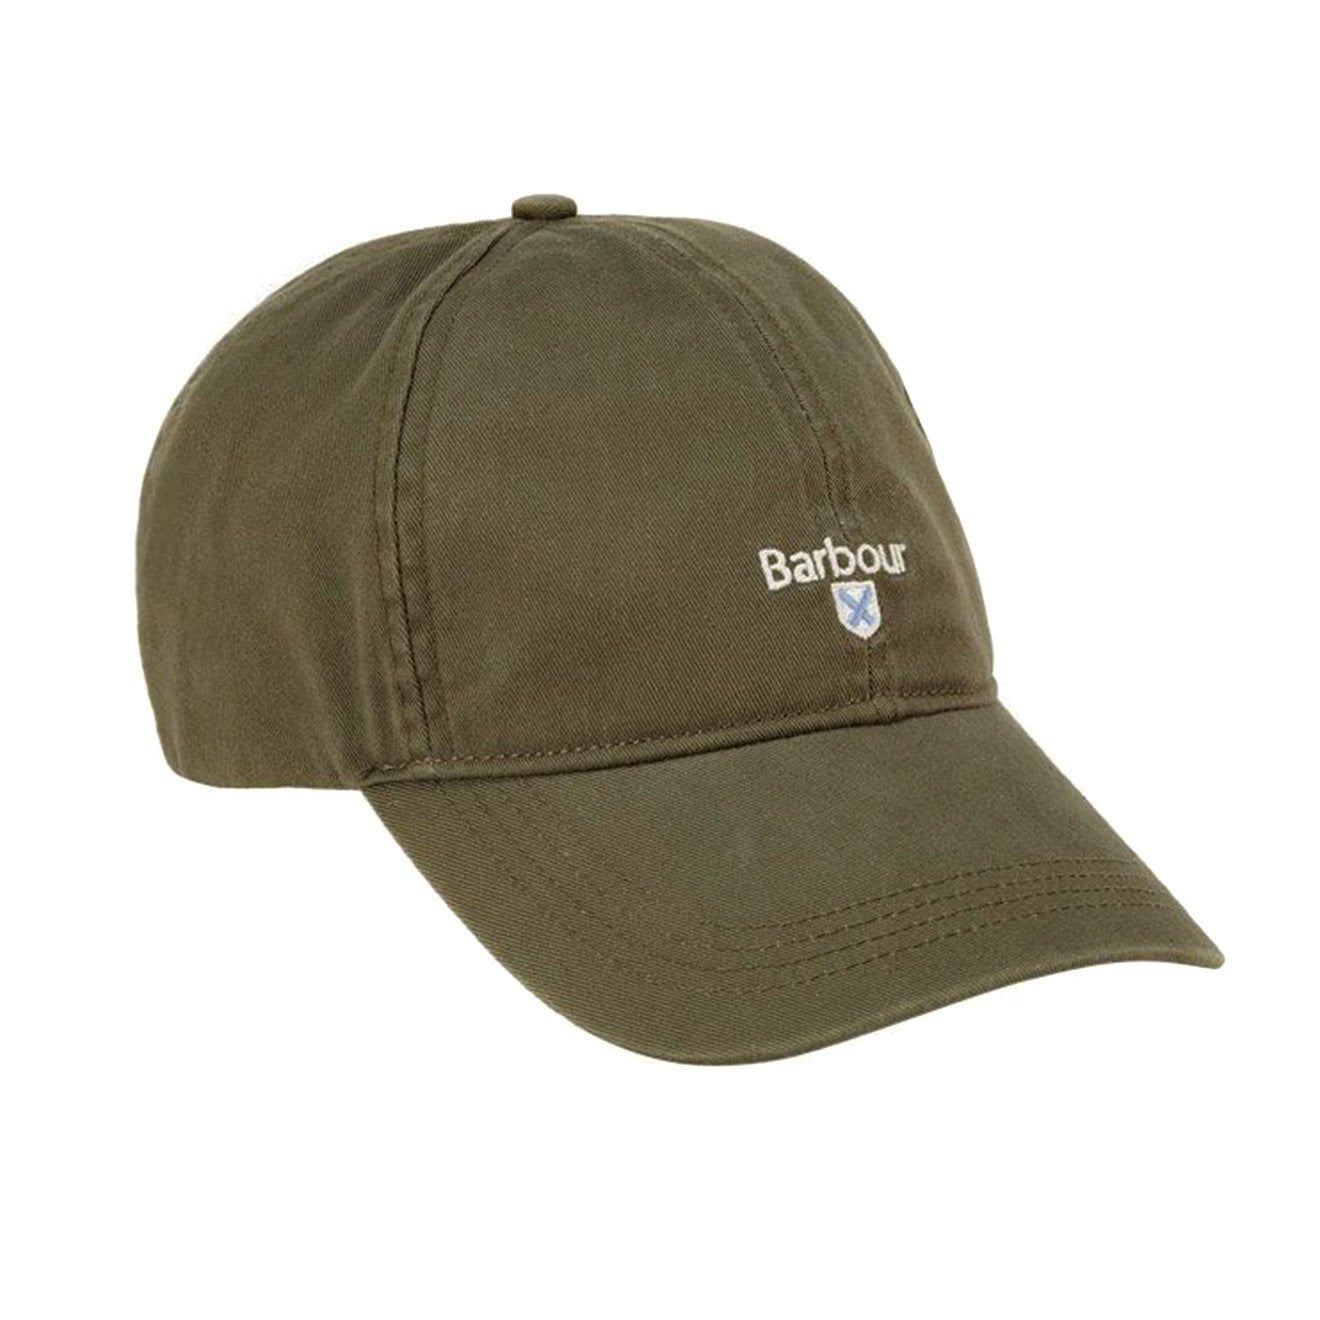 Barbour cascade Sports Cap Olive